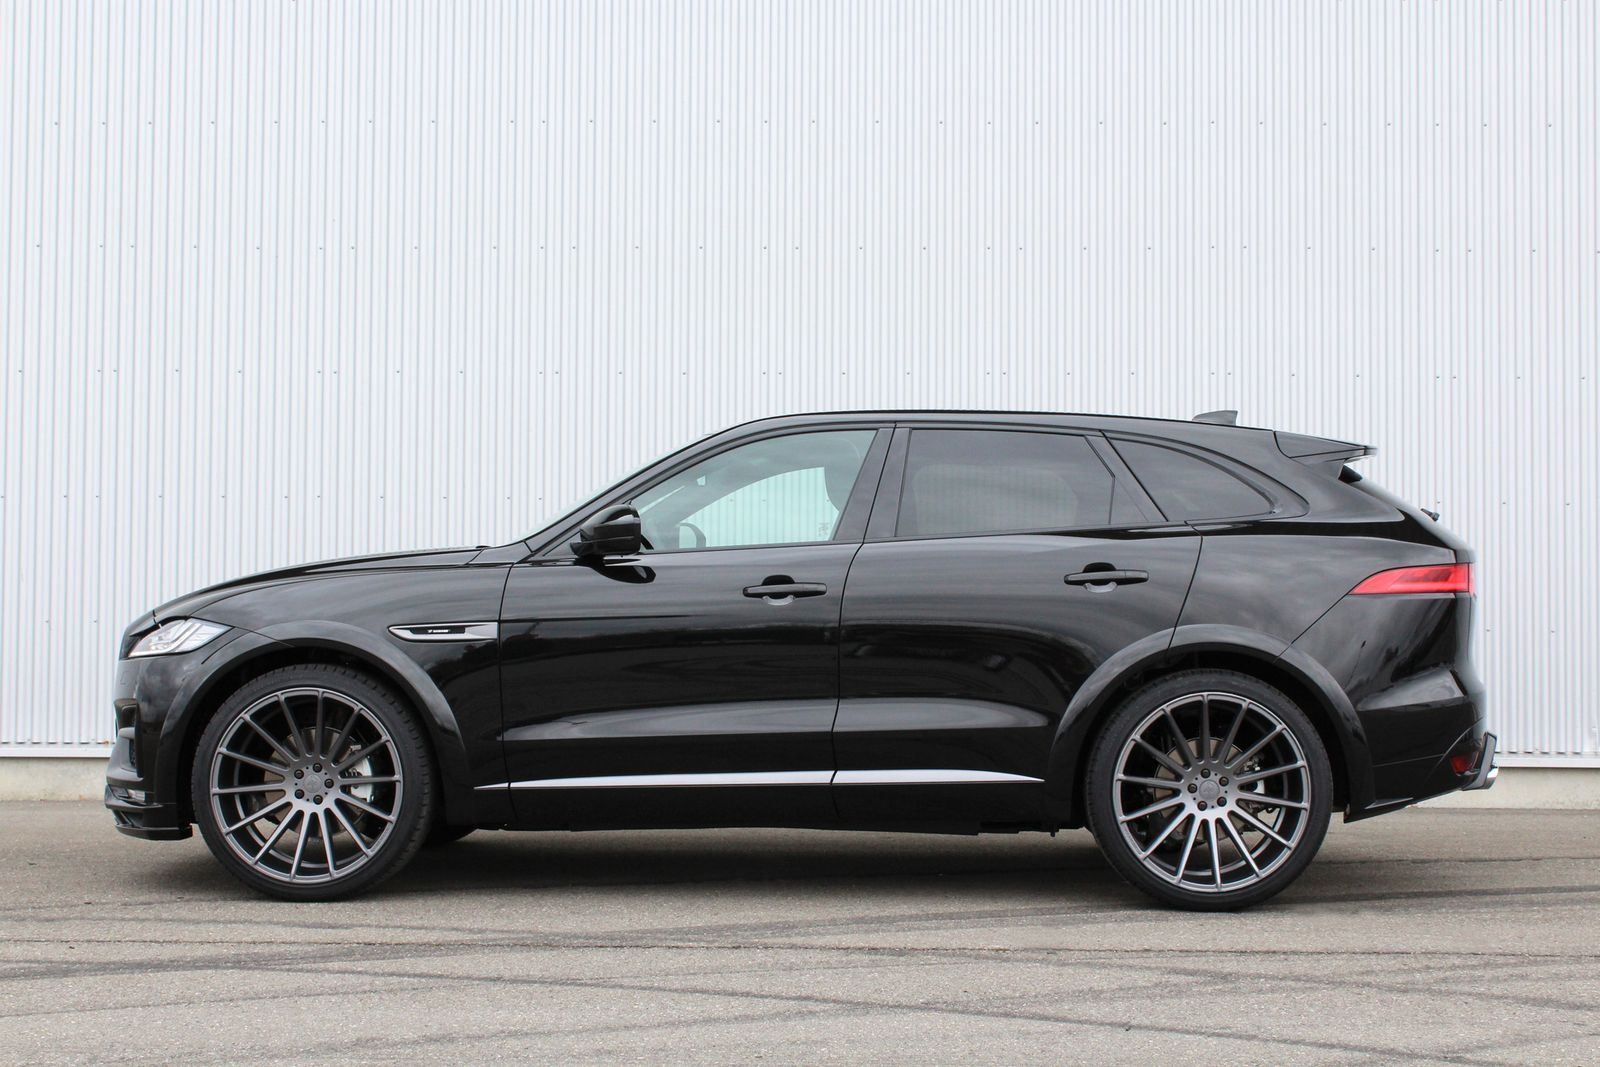 jaguar f type kit with Hamanns Jaguar F Pace Distills Refined on Brake Clutch Master Cylinder also Mercedes A45 Amg 4matic Aero Dynamic Pack In Essex For Sale 6216975 as well 2001 4wd Honda Ste agon together with 2017 Ford F 150 Raptor likewise 2016 Infiniti Qx70 Concept 5c62203b9bff8b49.